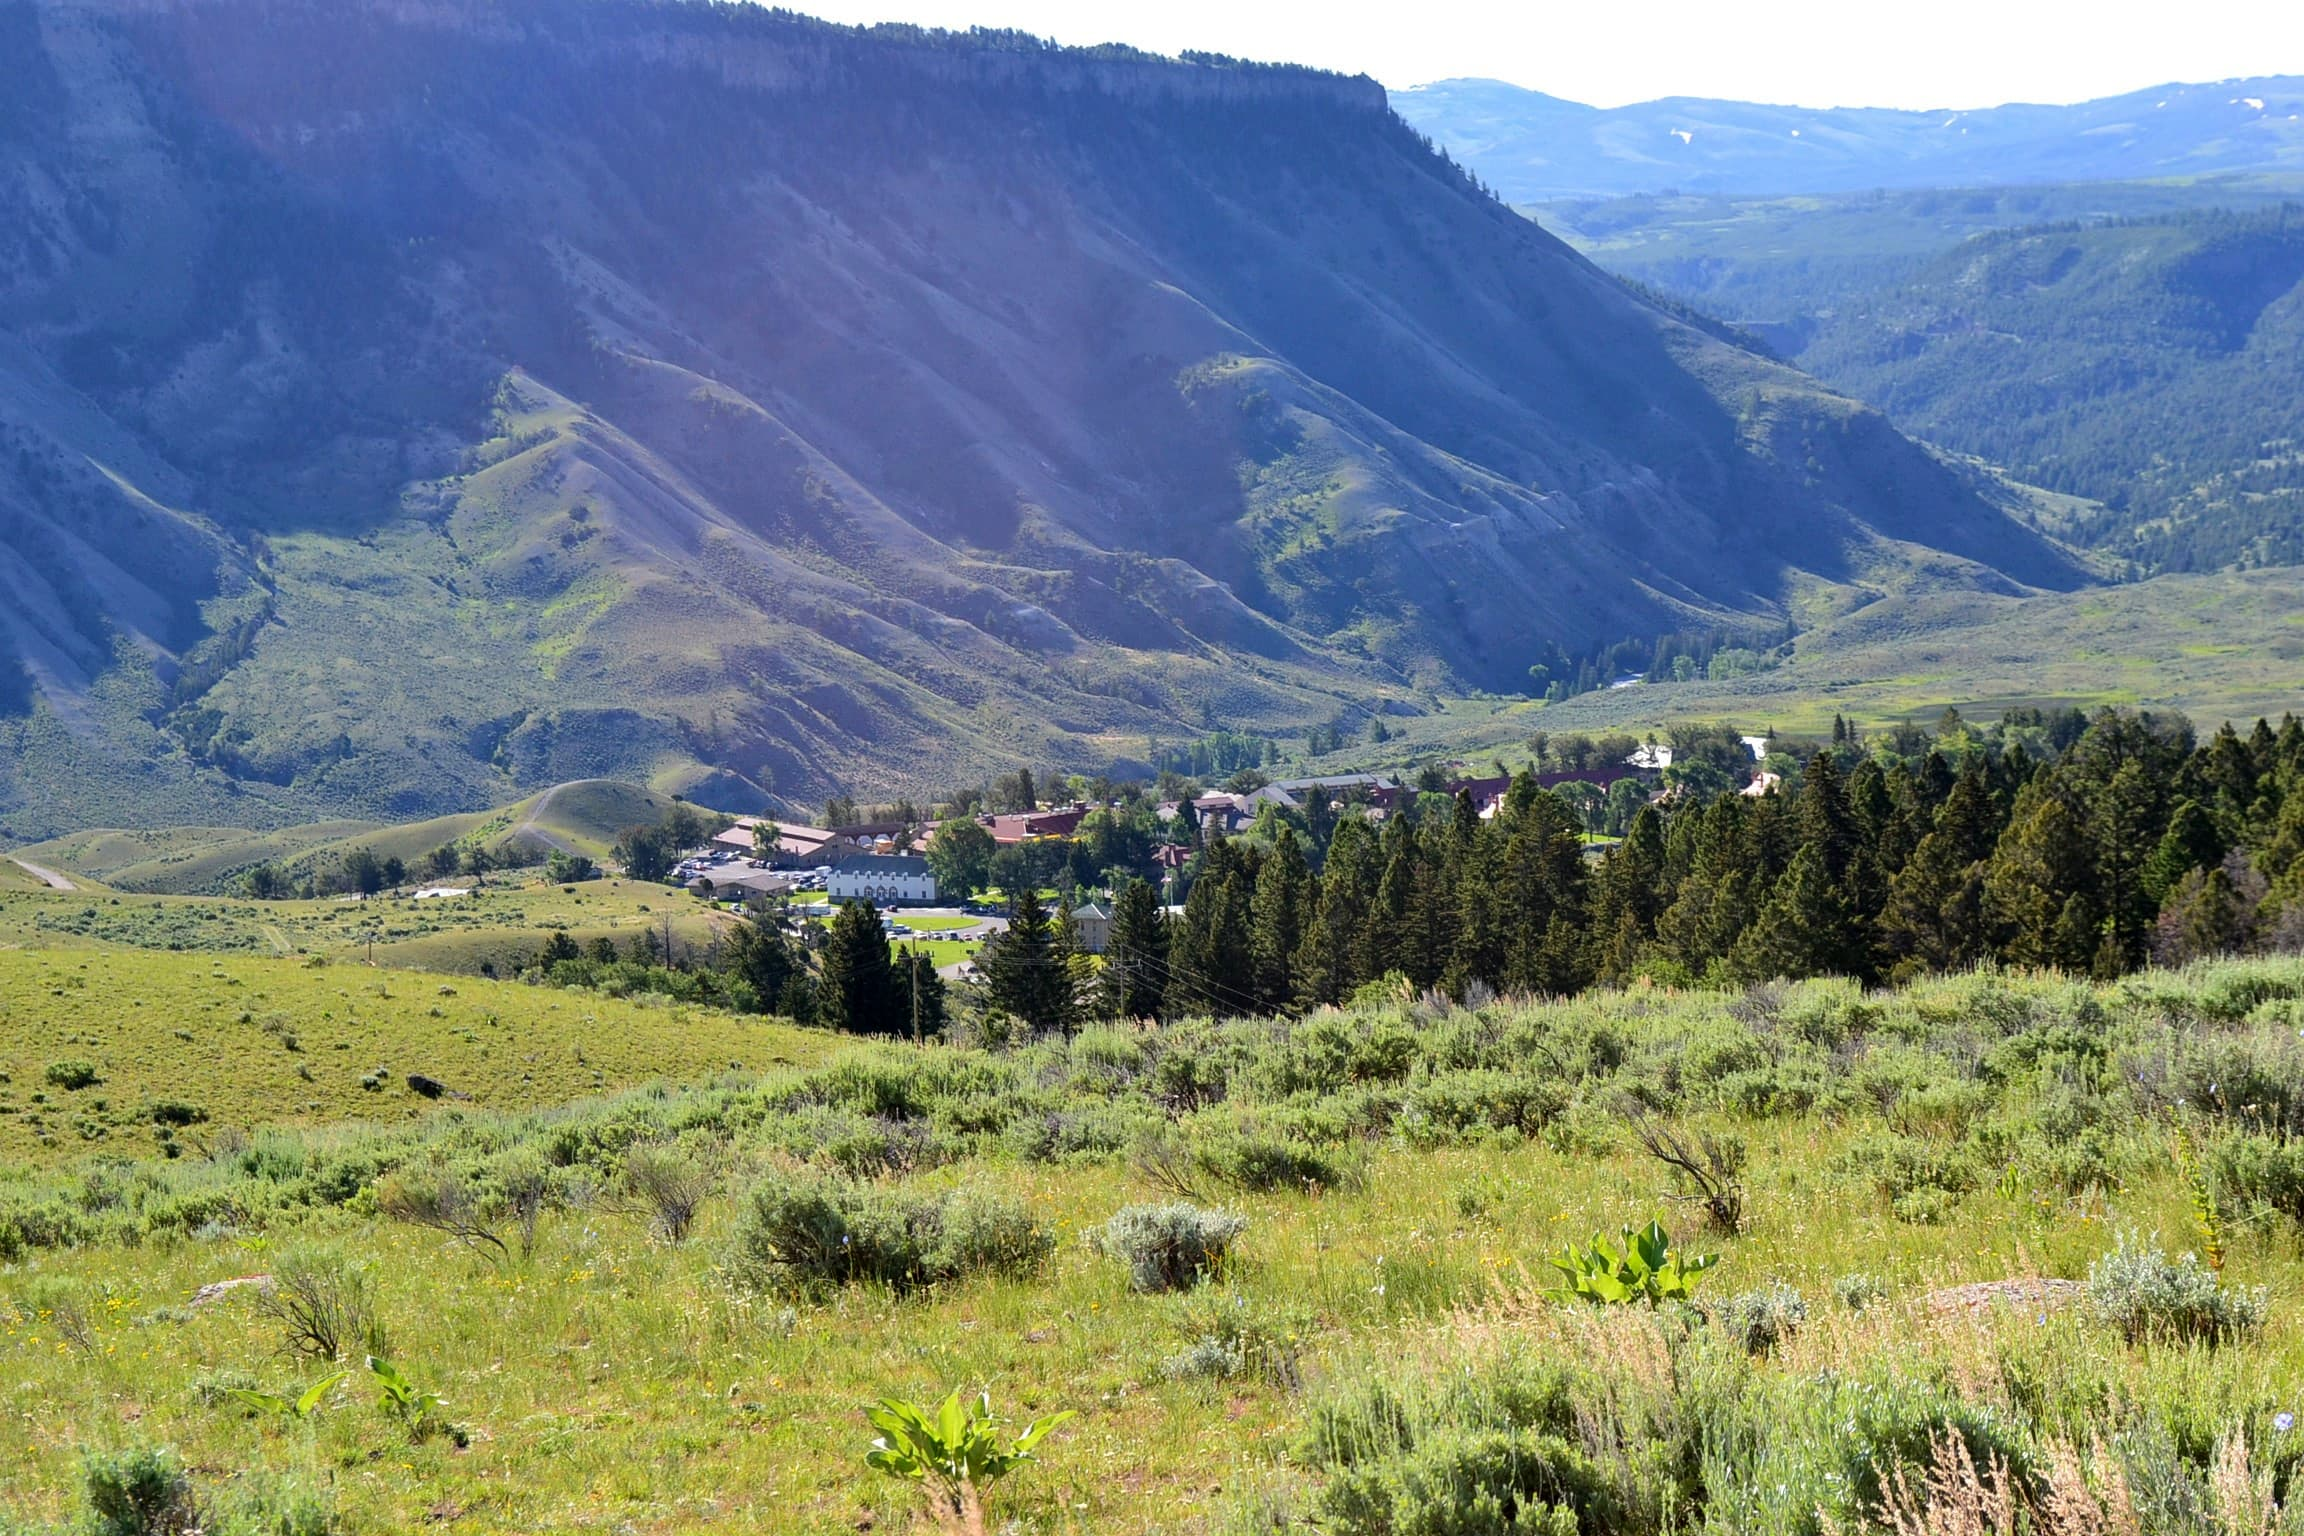 A view of Mammoth Hot Springs in the distance from above.